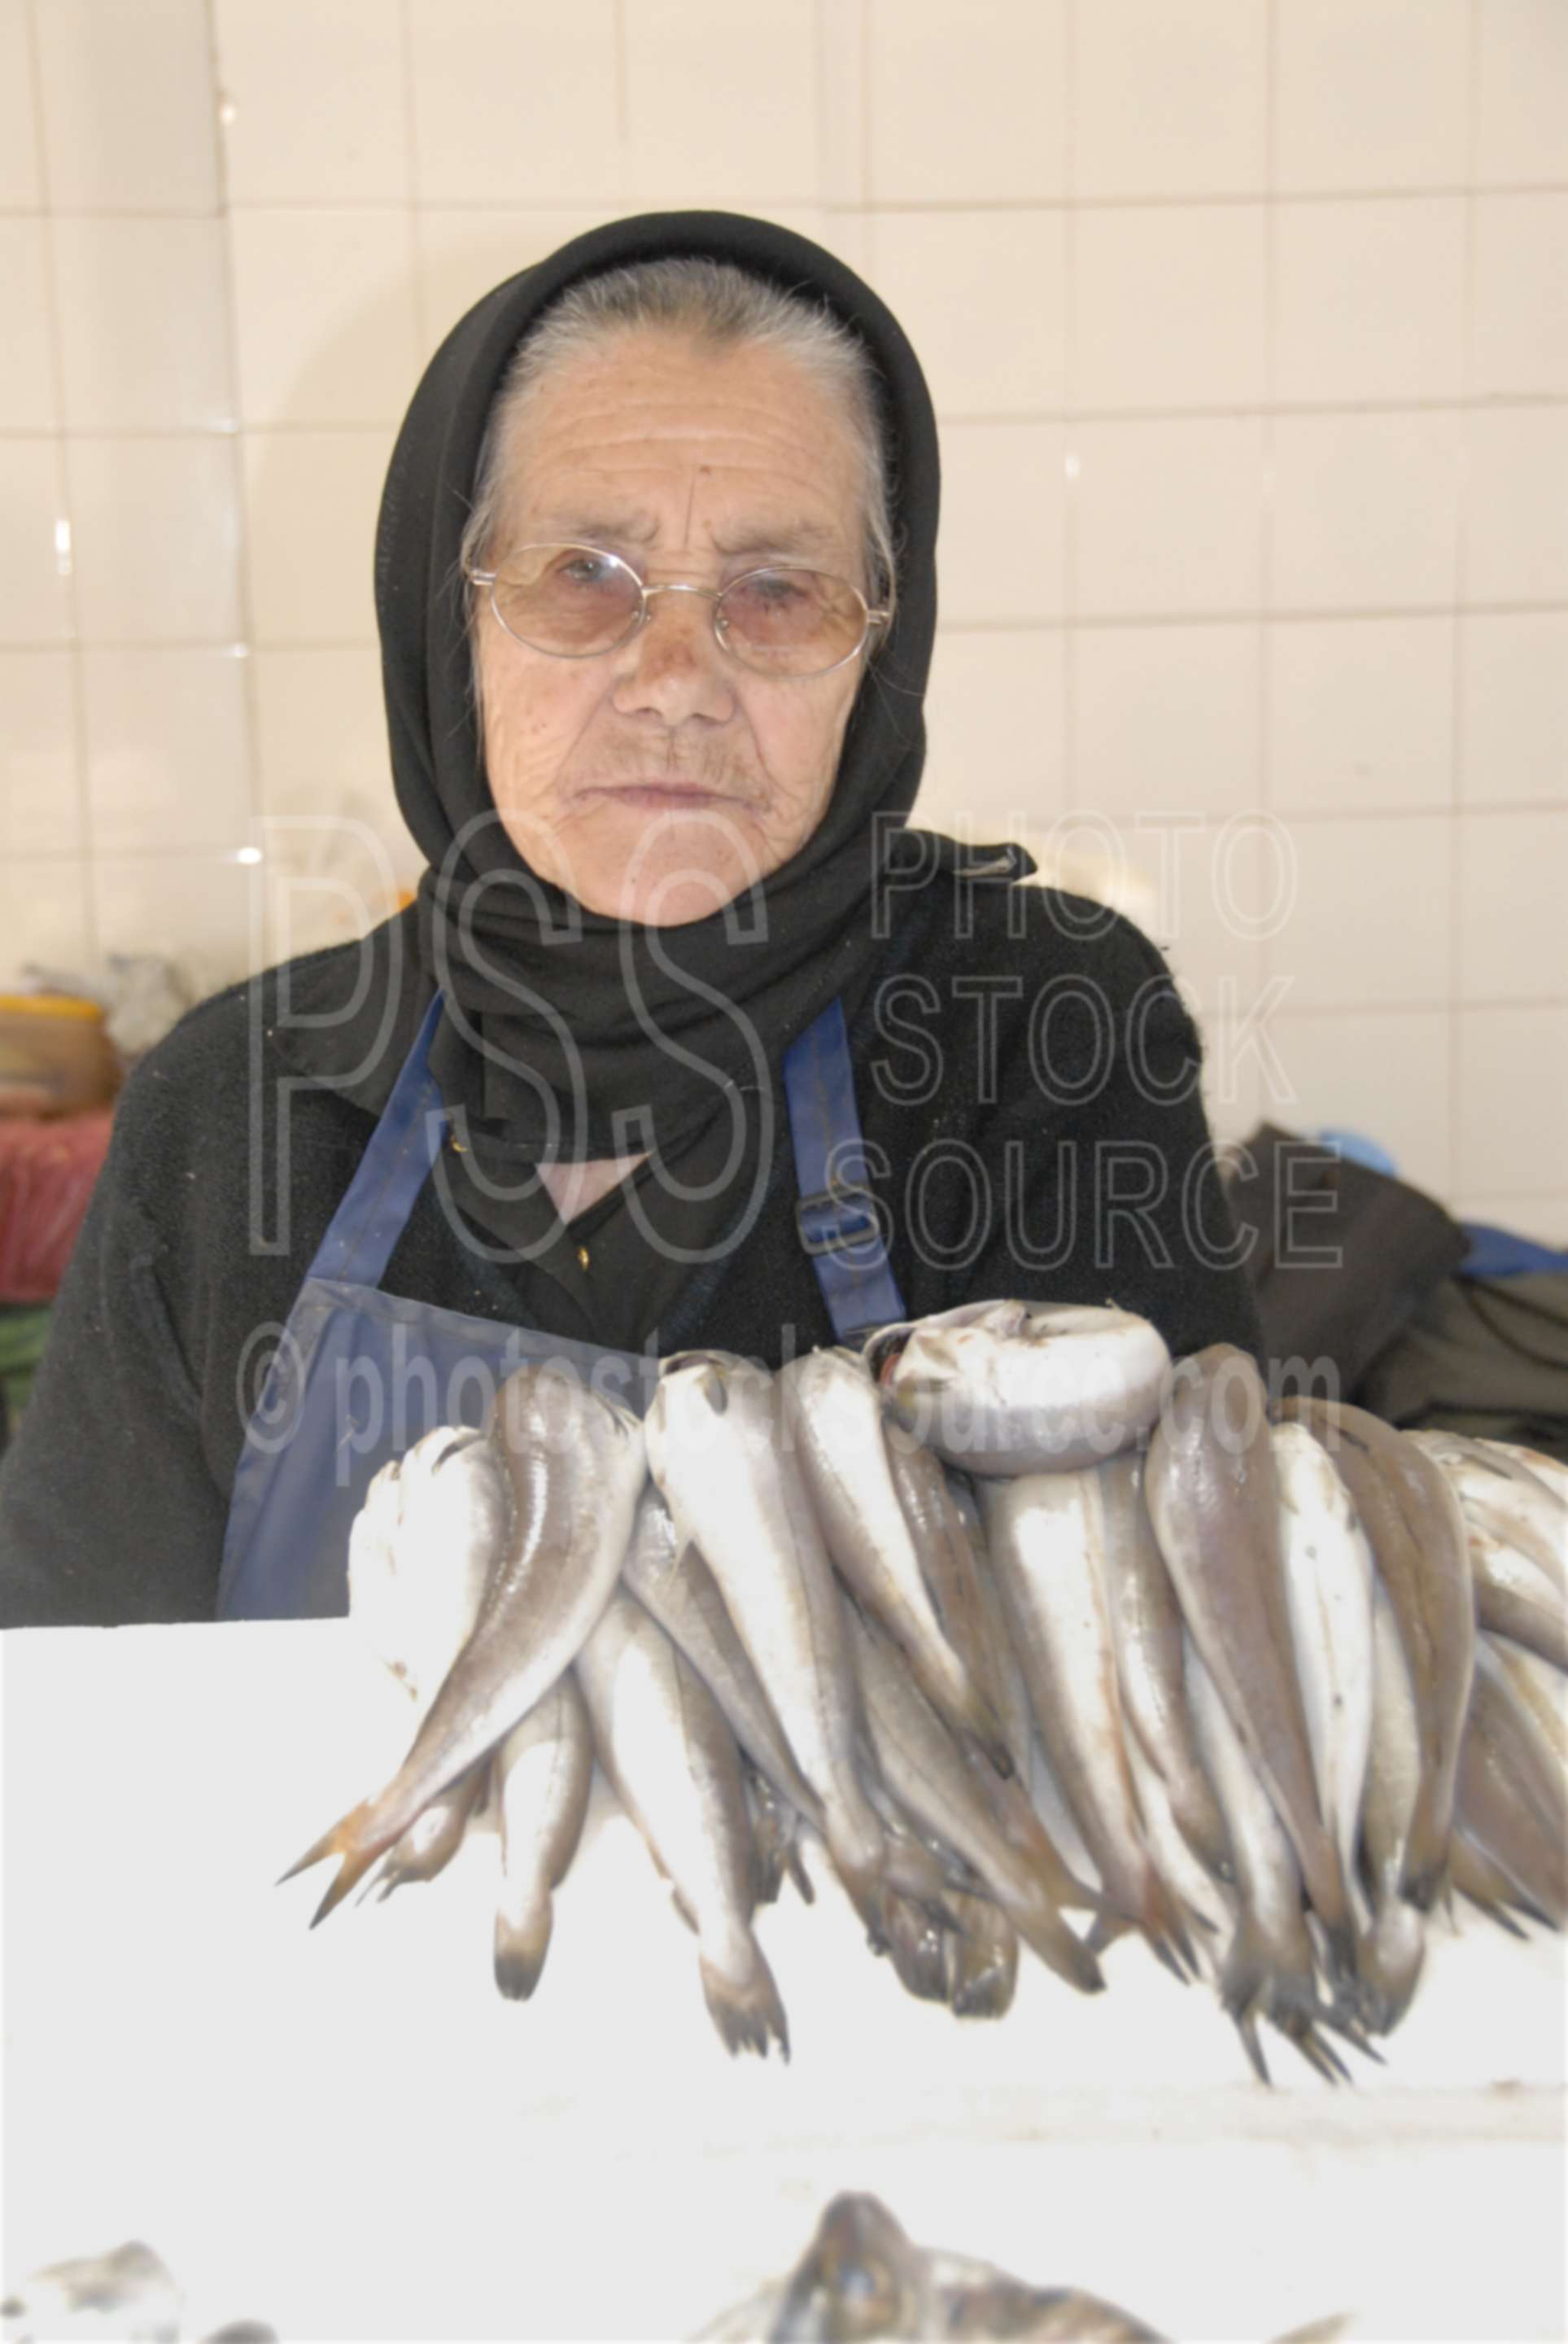 Fish Market,food,seller,vendor,mercado do peixe,woman,market,fish,fishmonger